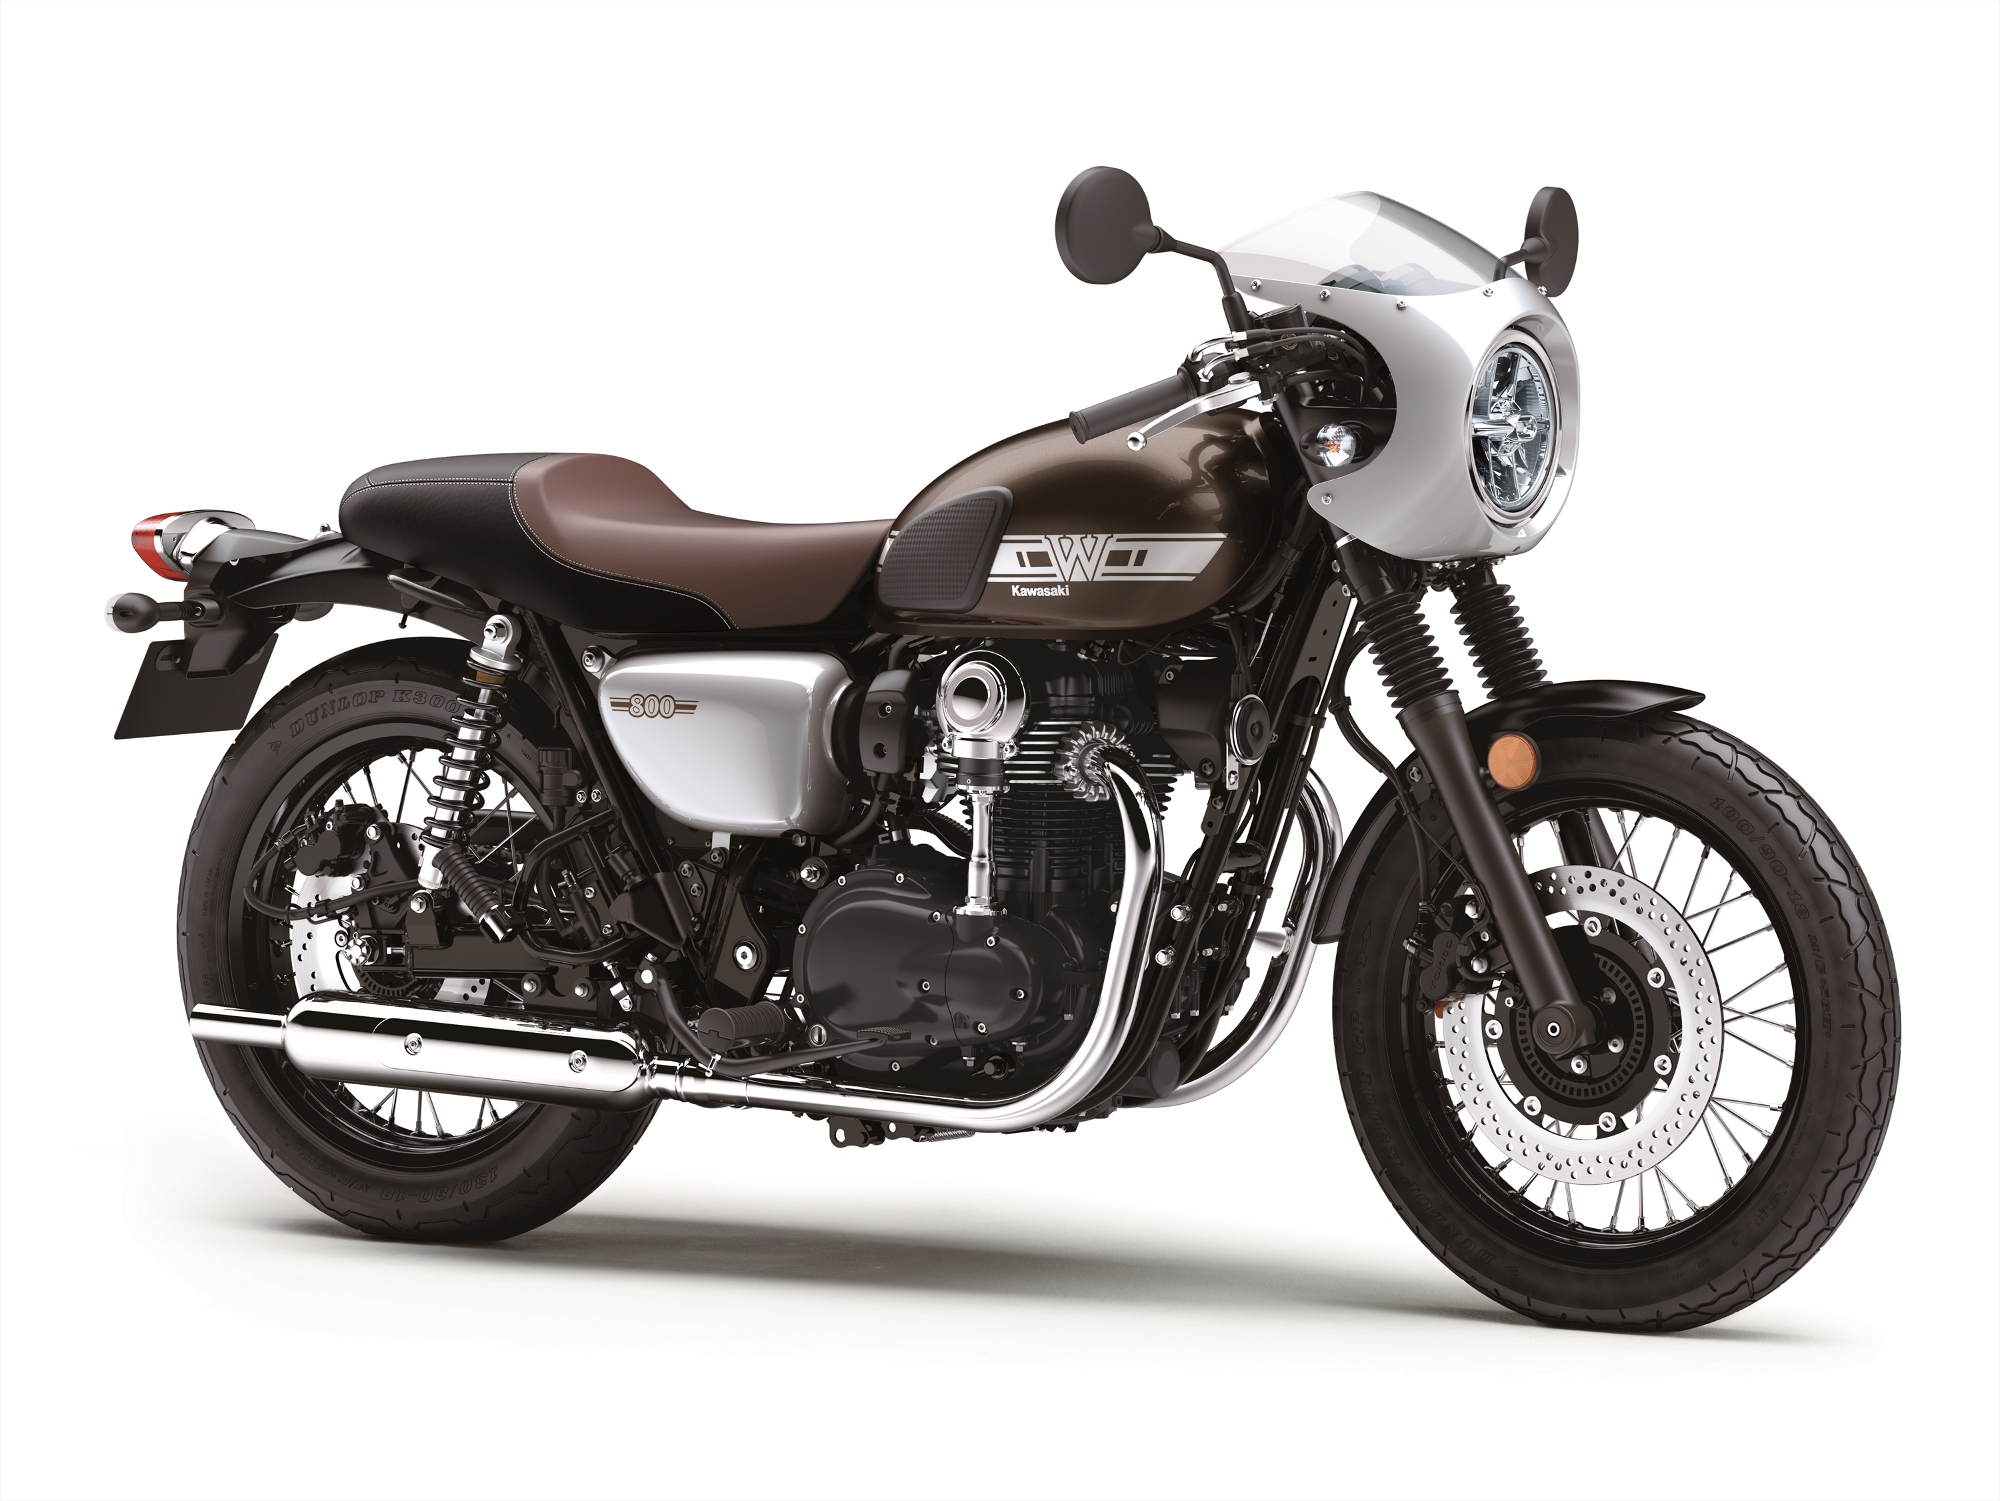 2019 Kawasaki W800 Cafe Another Delightfully Retro Standard From